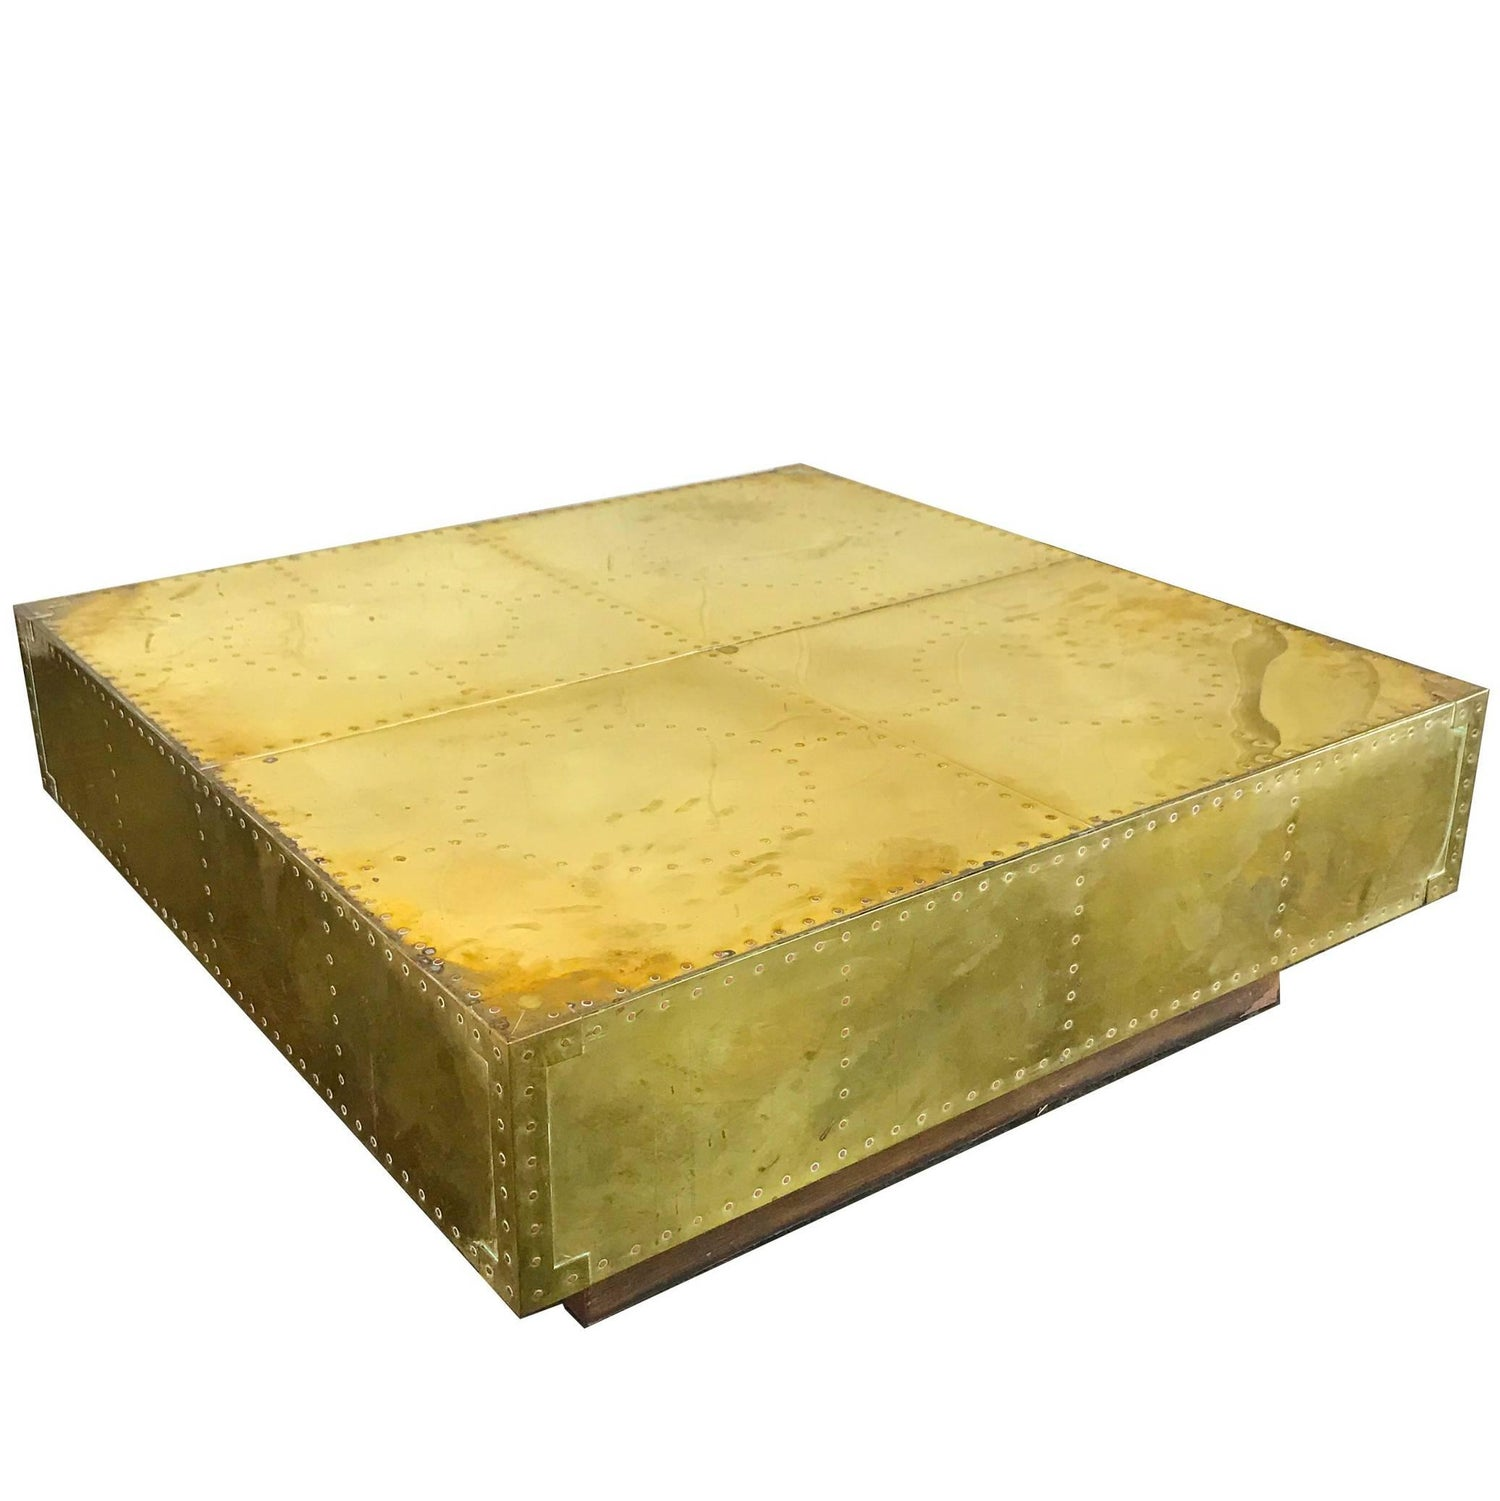 Sarreid Brass Coffee Table For Sale at 1stdibs